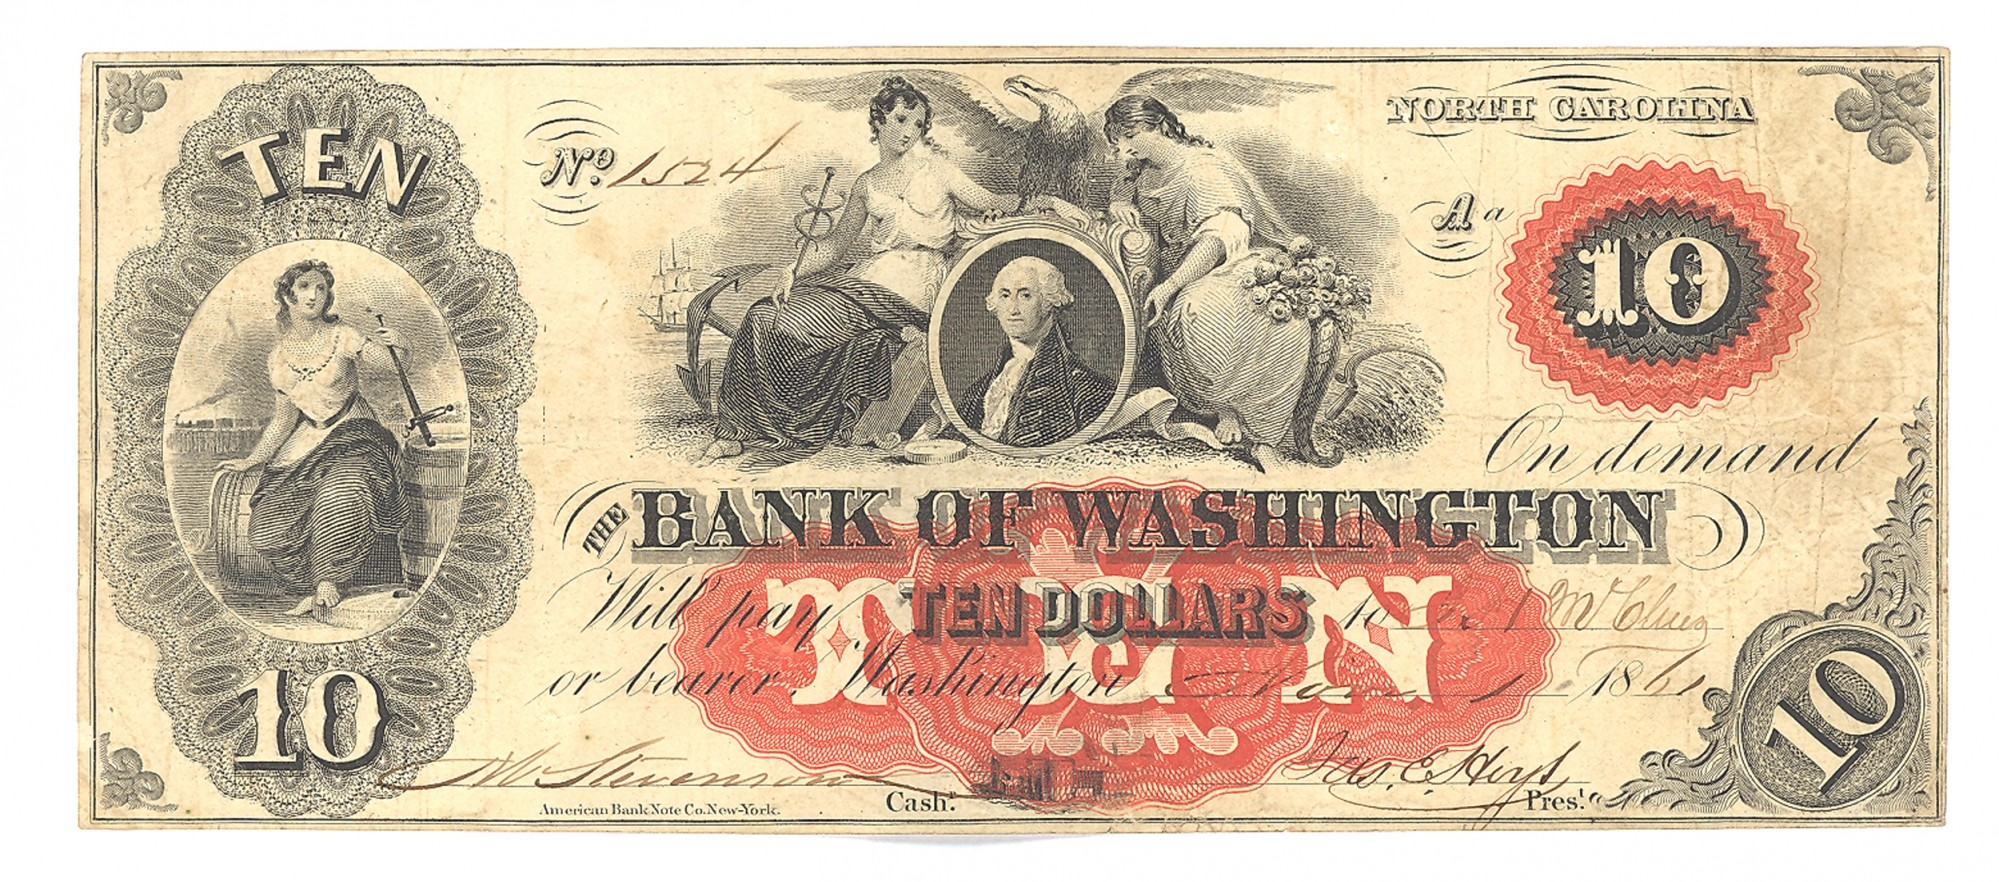 BANK OF WASHINGTON, NORTH CAROLINA $10 NOTE